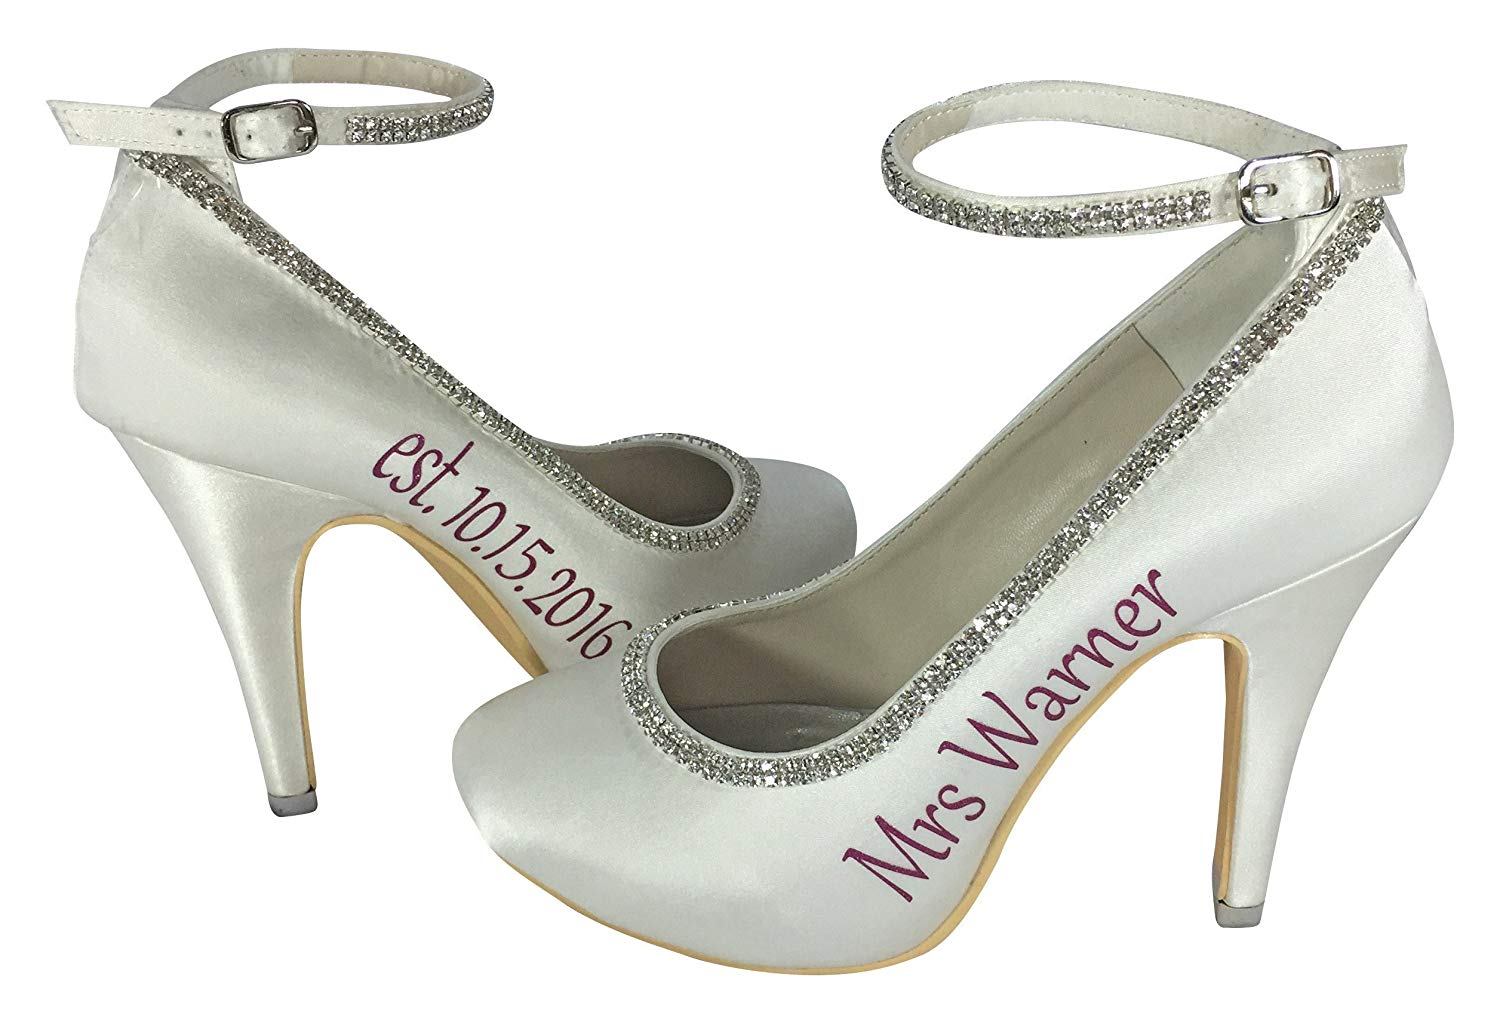 ccf7be3ca7316e Get Quotations · Handmade Ivory Bridal Heels with Hot Pink Rhinestone Ankle  Strap